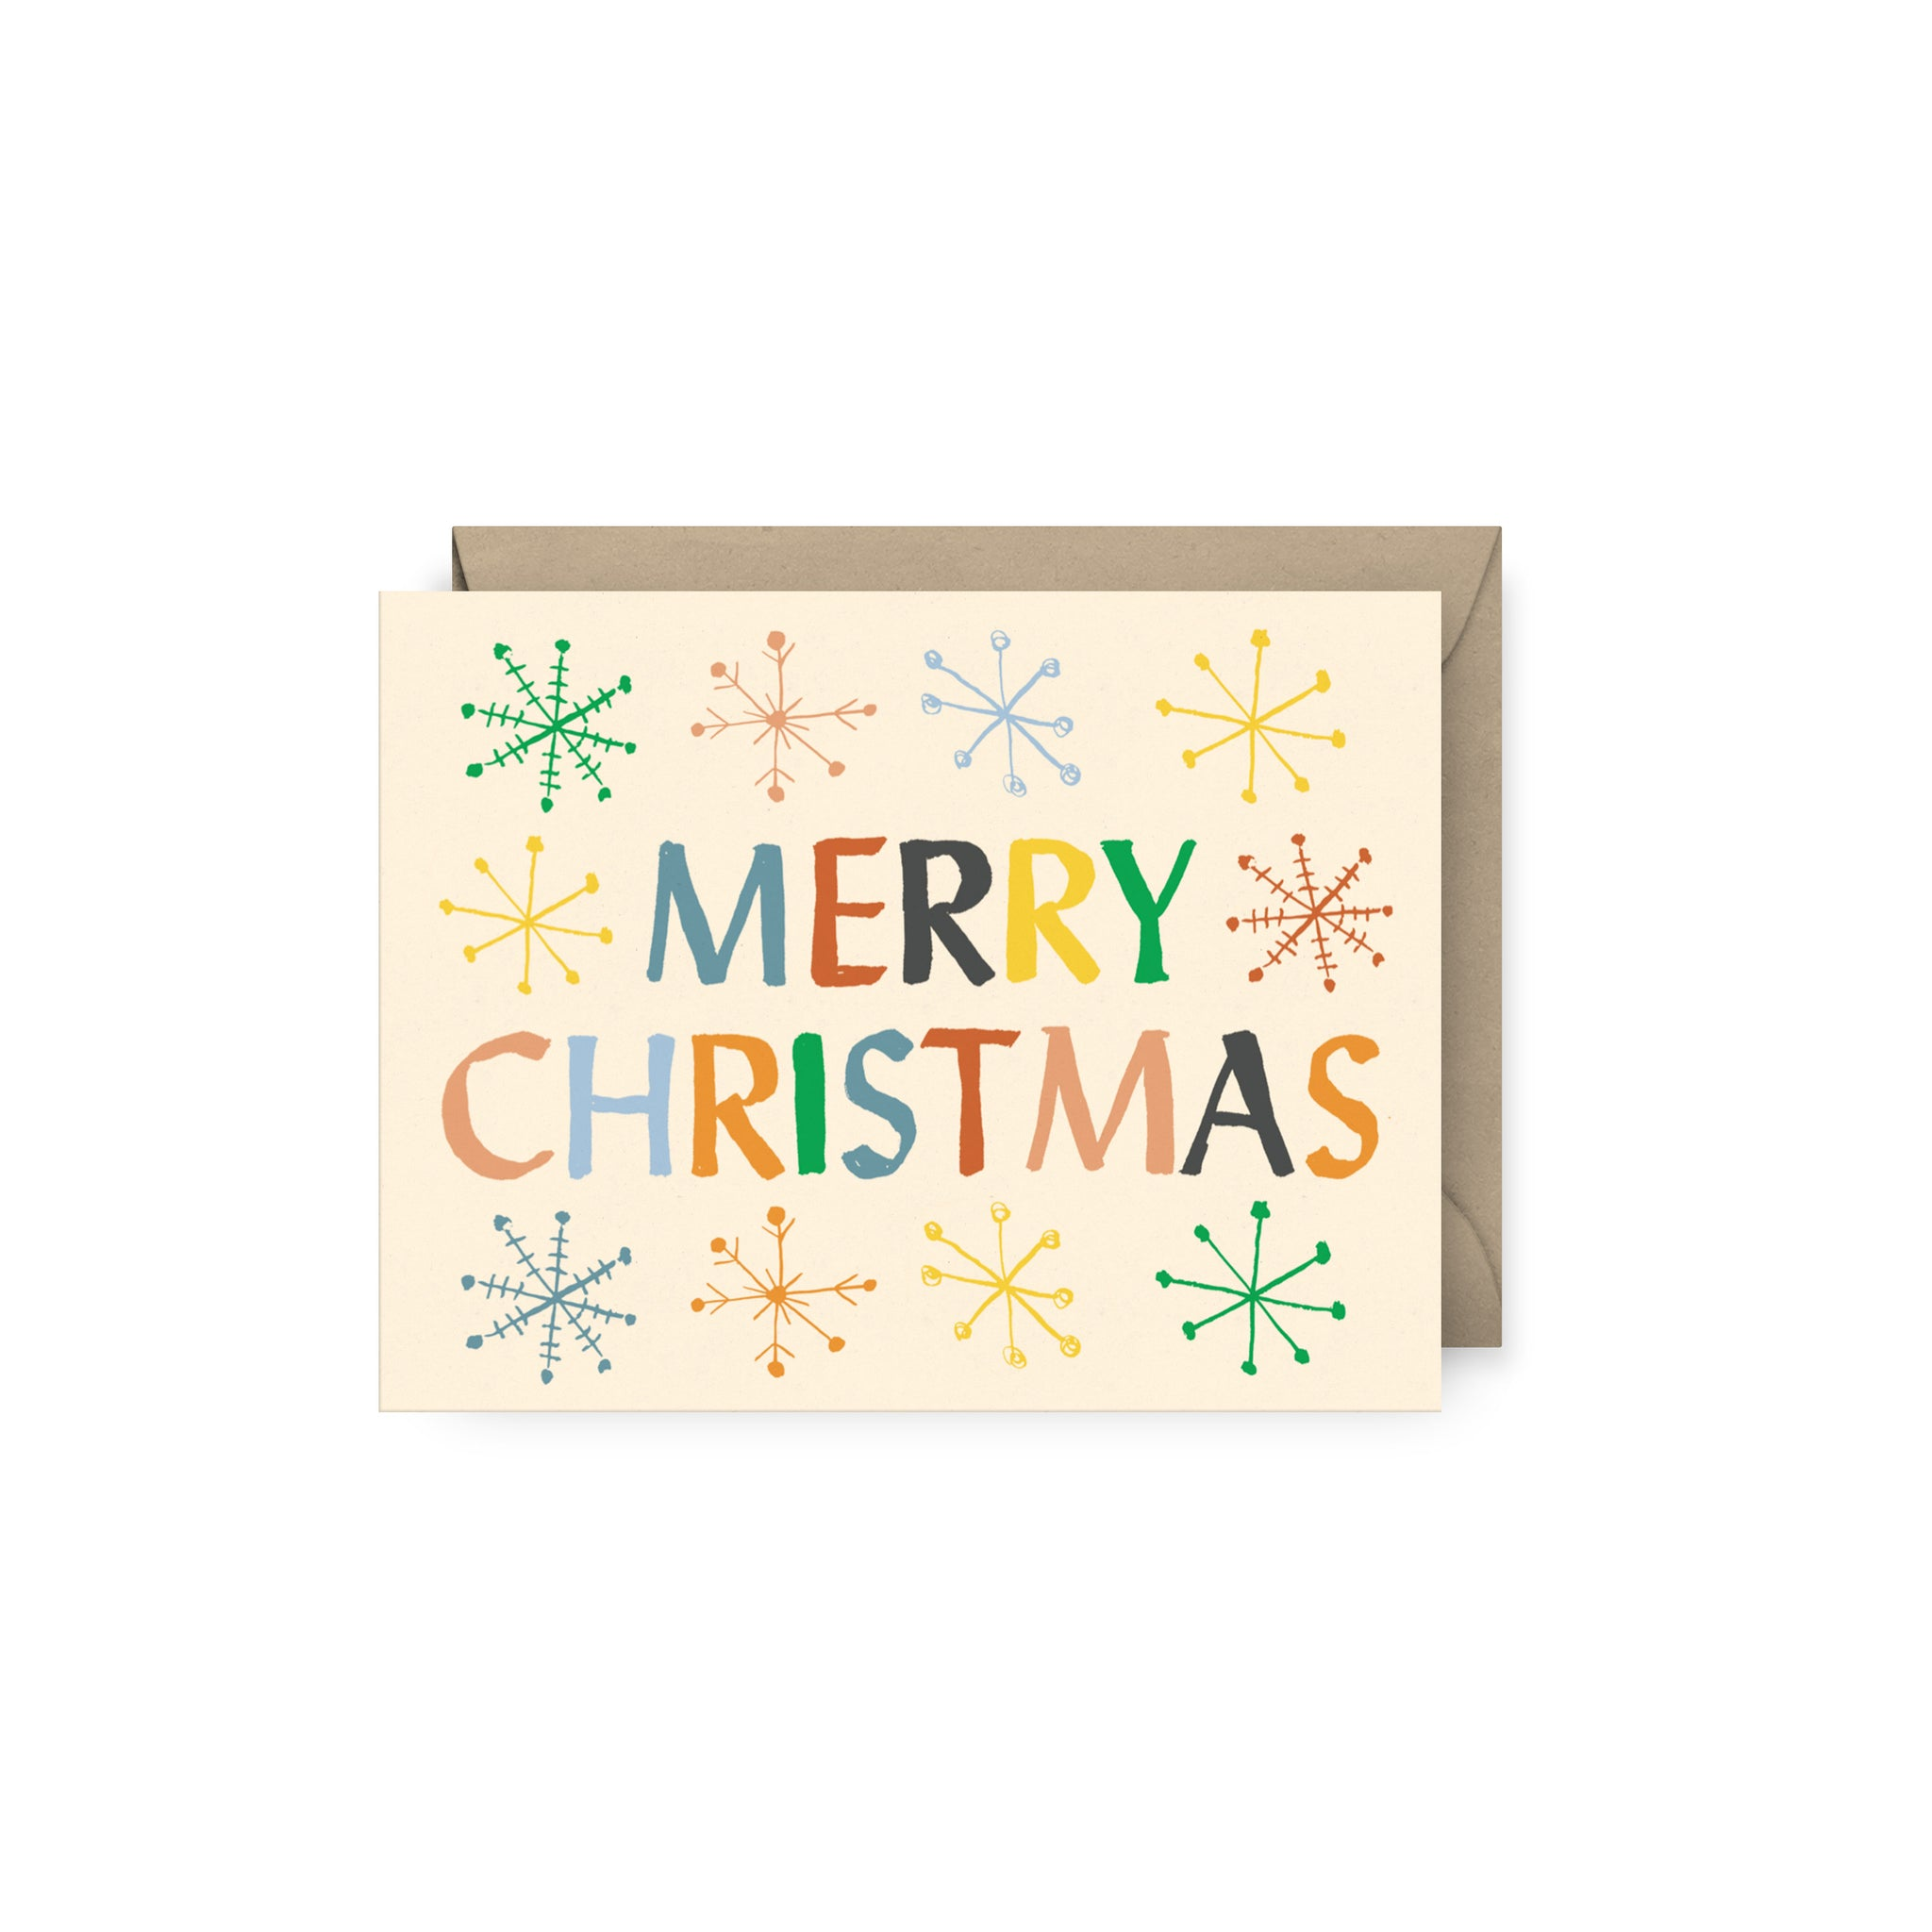 Merry Christmas Snowflake Card